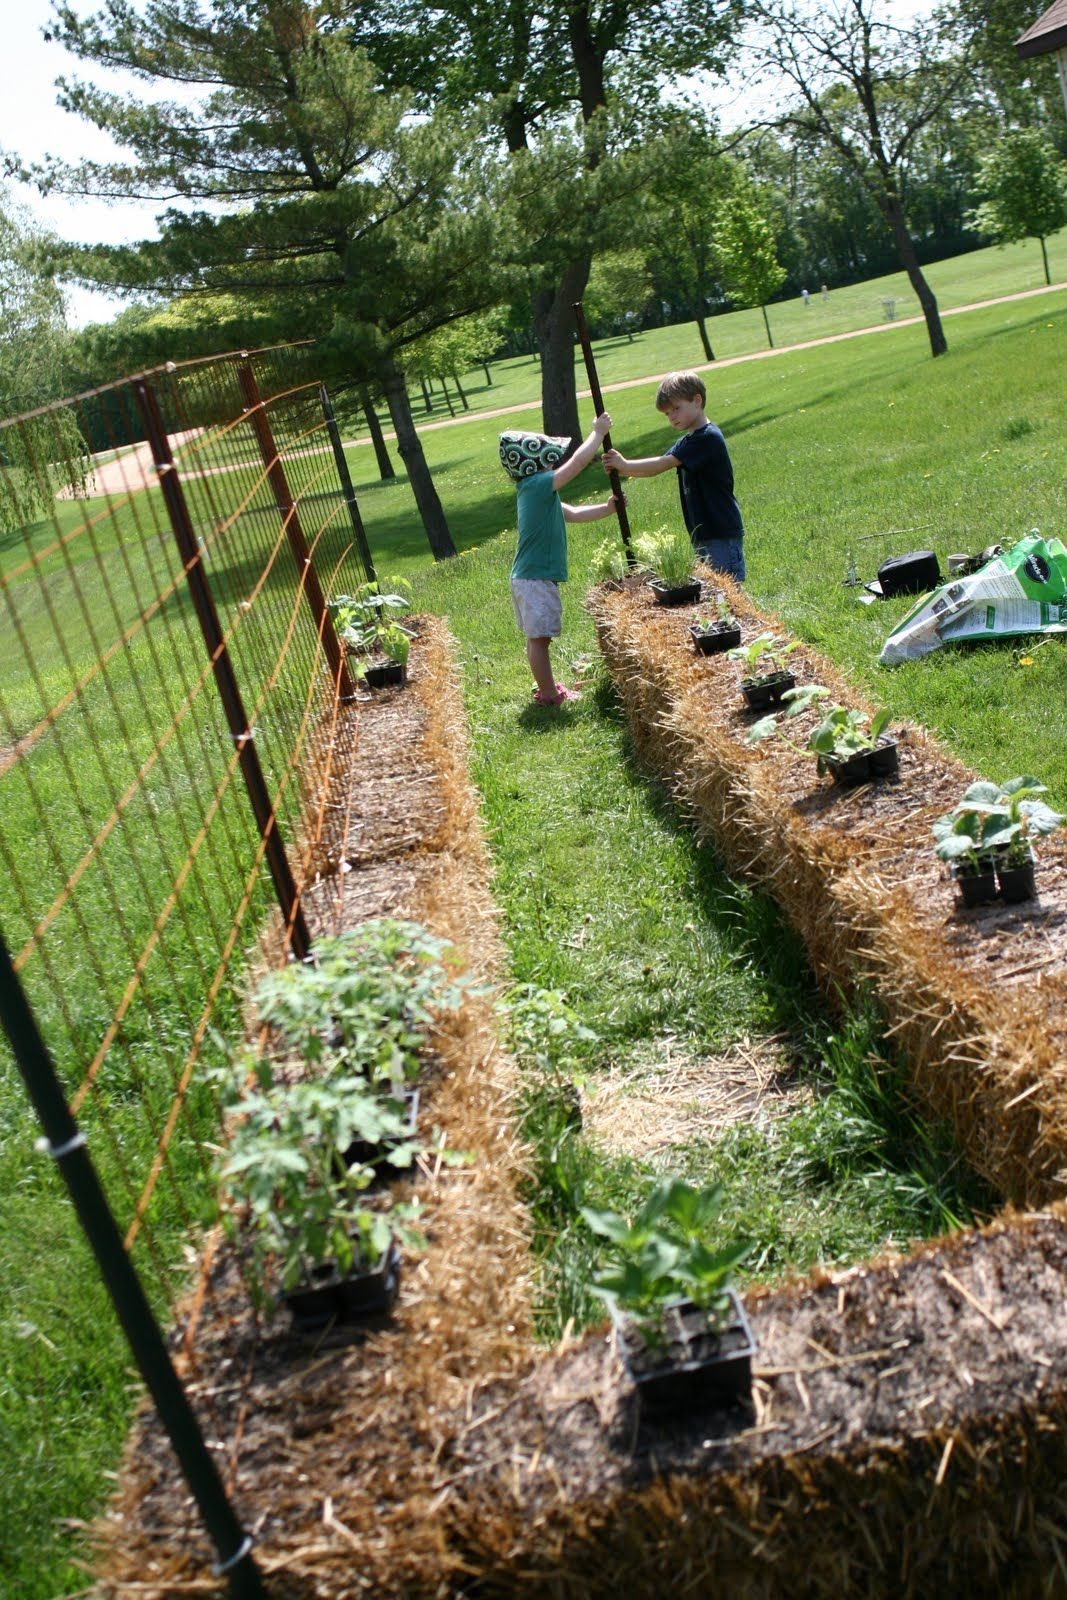 Bale Visite Straw Bale Gardening The Love Of Family How To Plant A